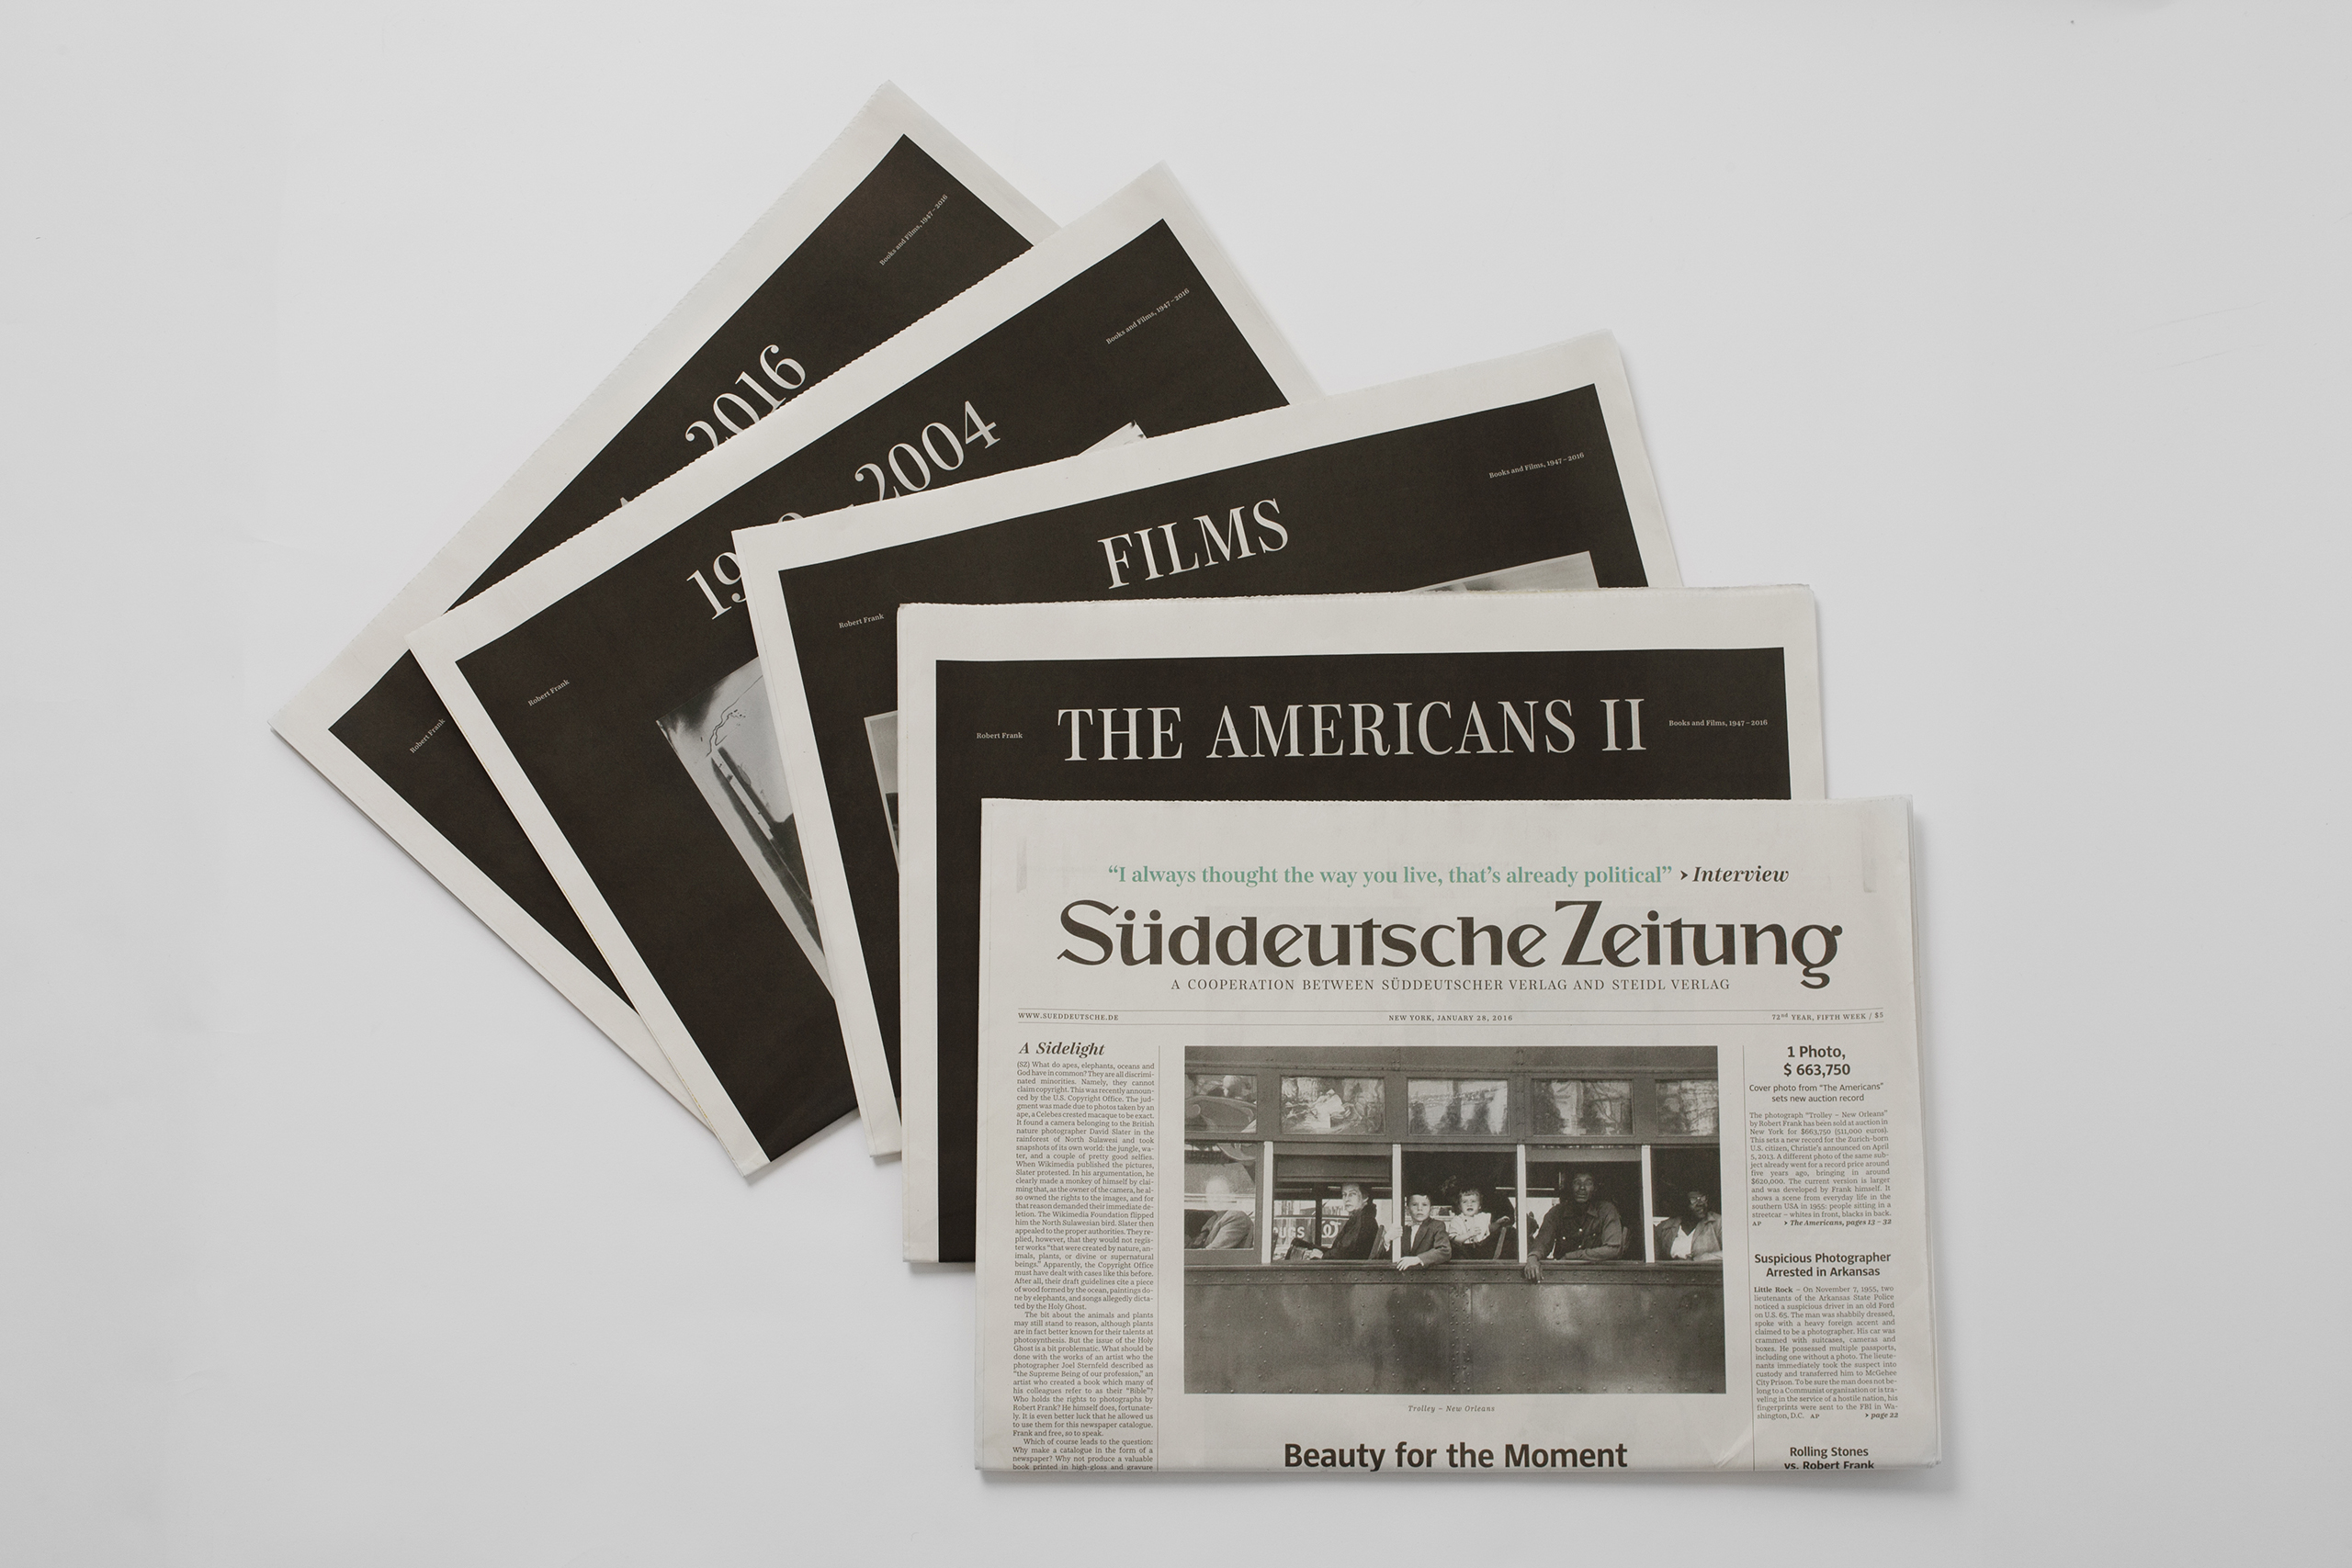 Süddeutsche Zeitung a cooperation between Suddeutsche Zeitung and Steidl, photographs by Robert FrankPublished by Suddeutsche Zeitung and Steidl